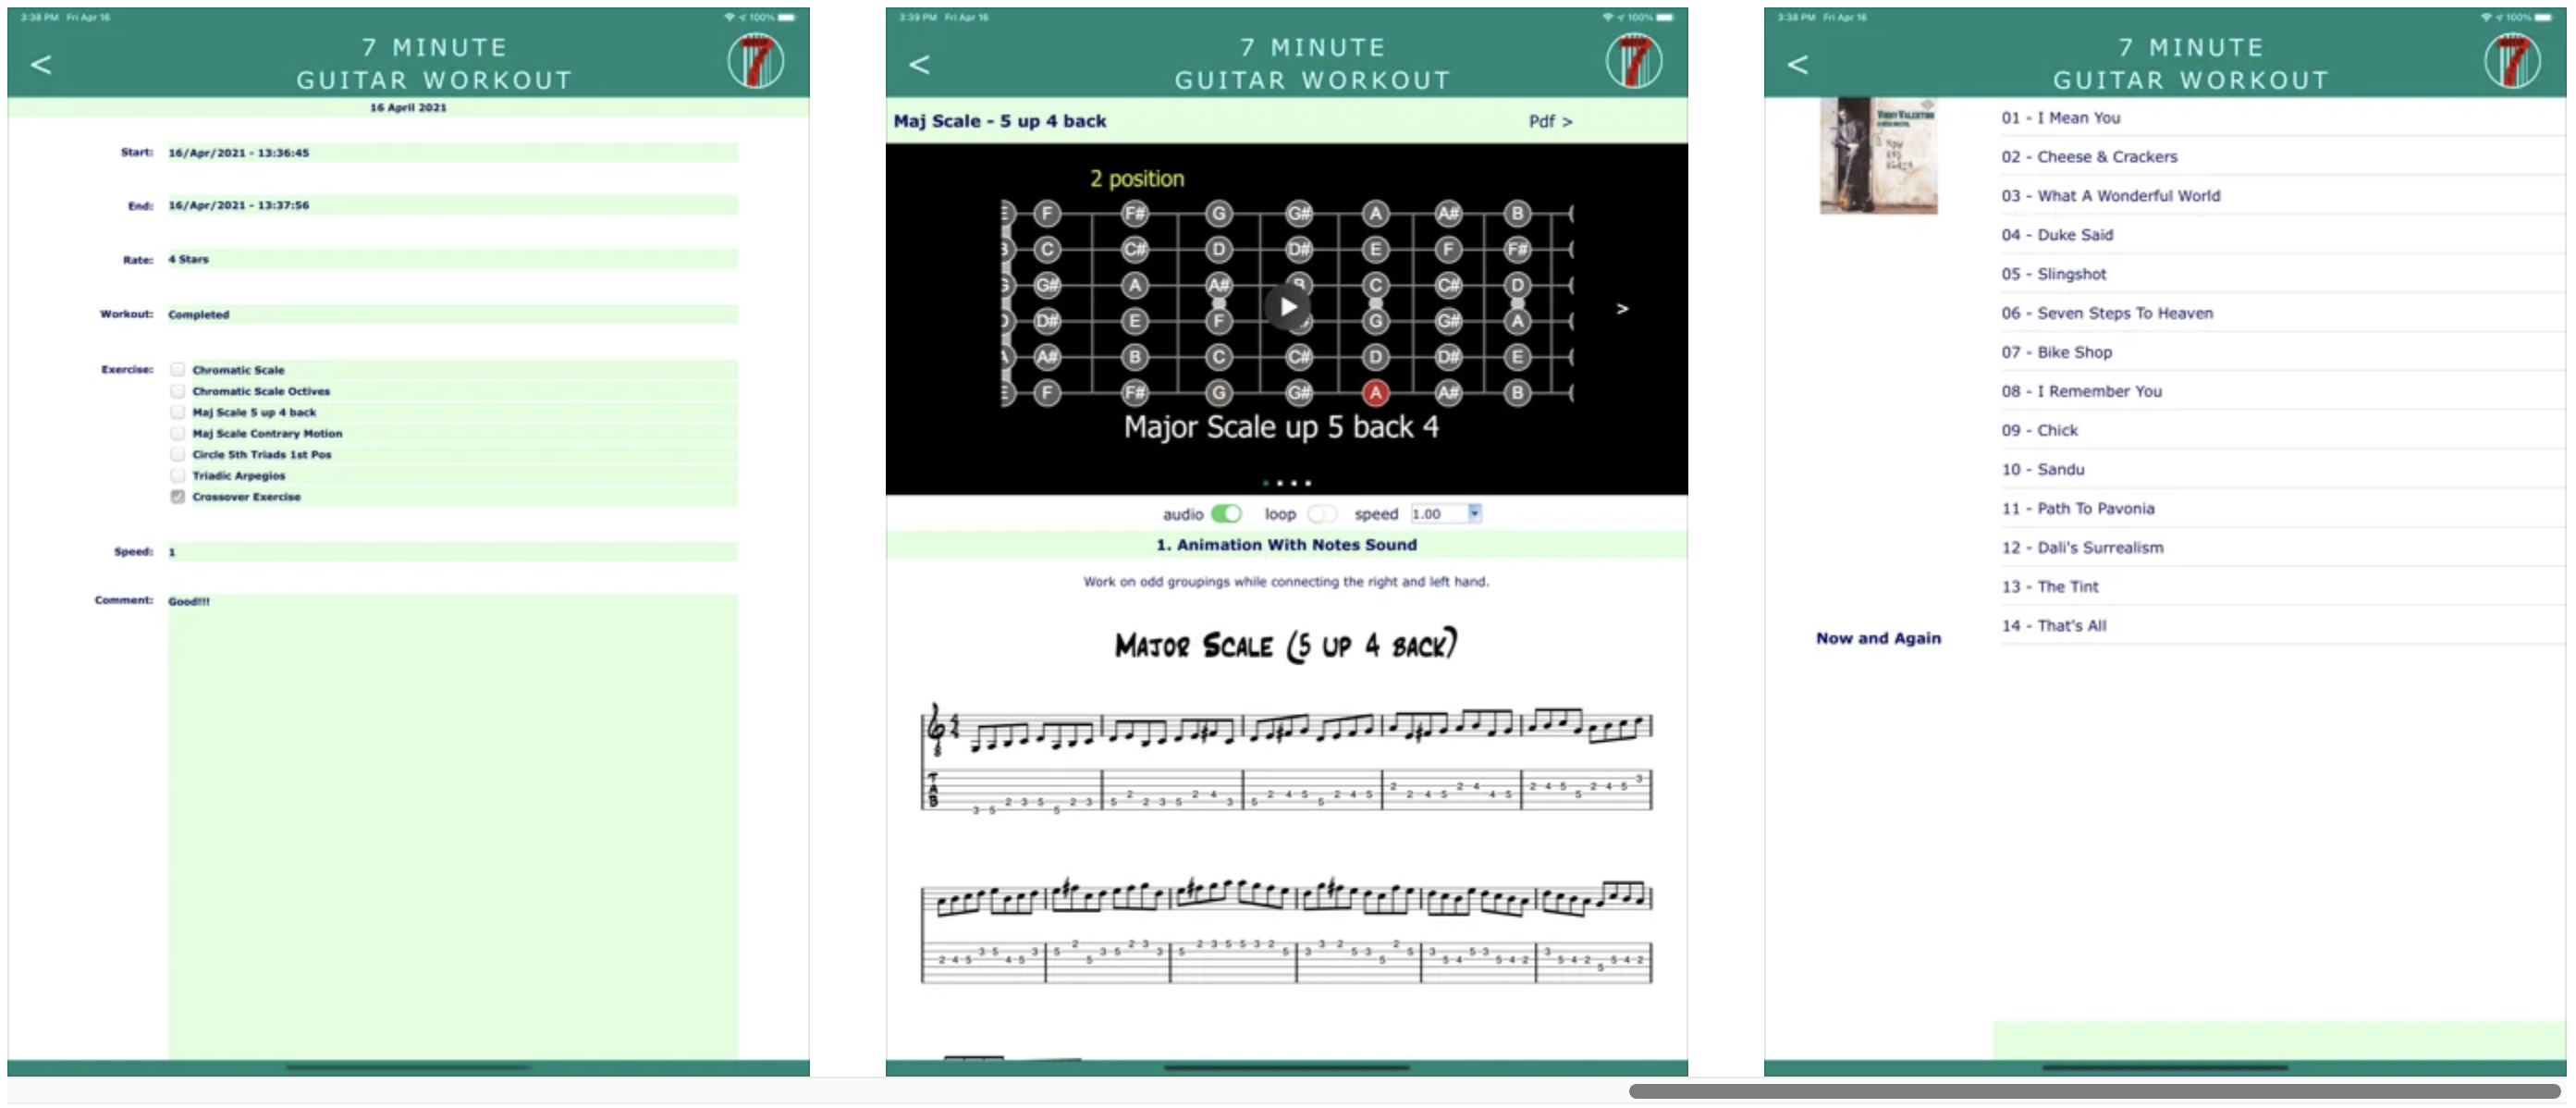 Omnis Mobile App helps Guitarists take 7 minute Workout!